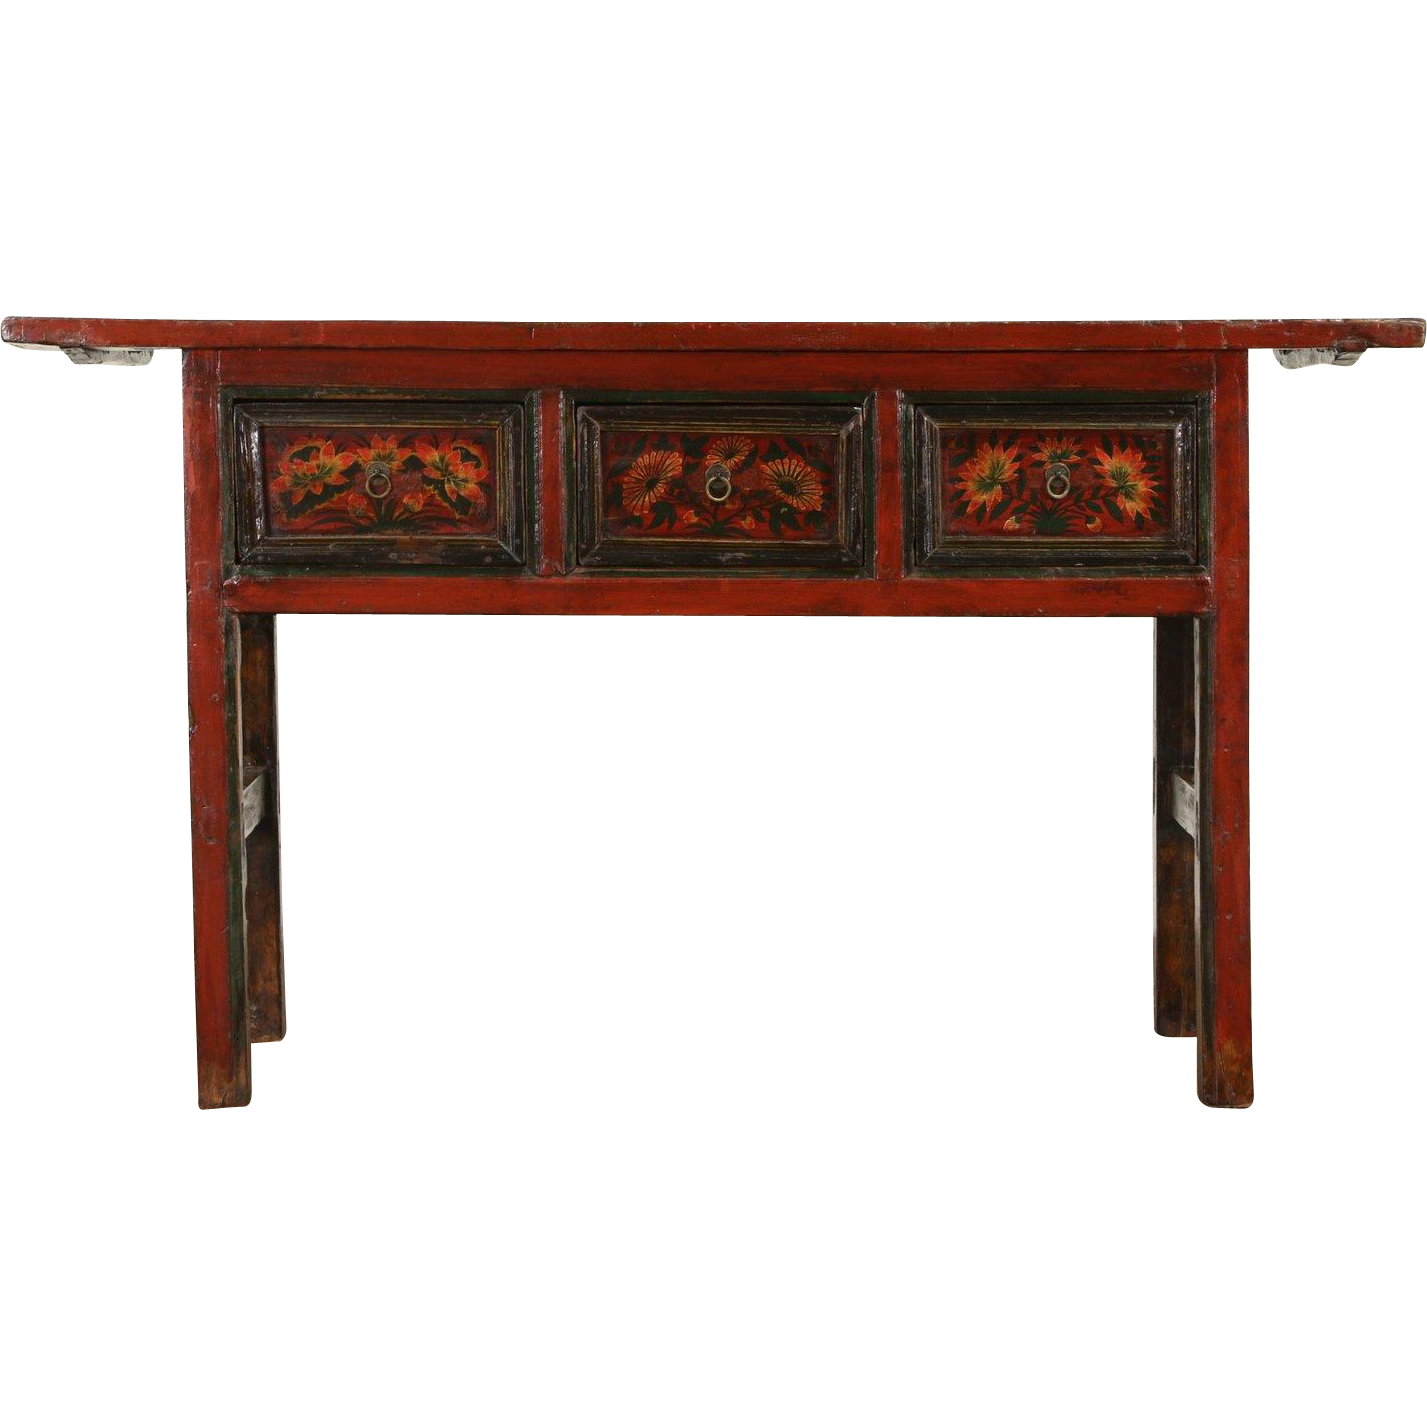 Chinese Antique 1900's Console or Sofa Table, Hand Painted Lacquer